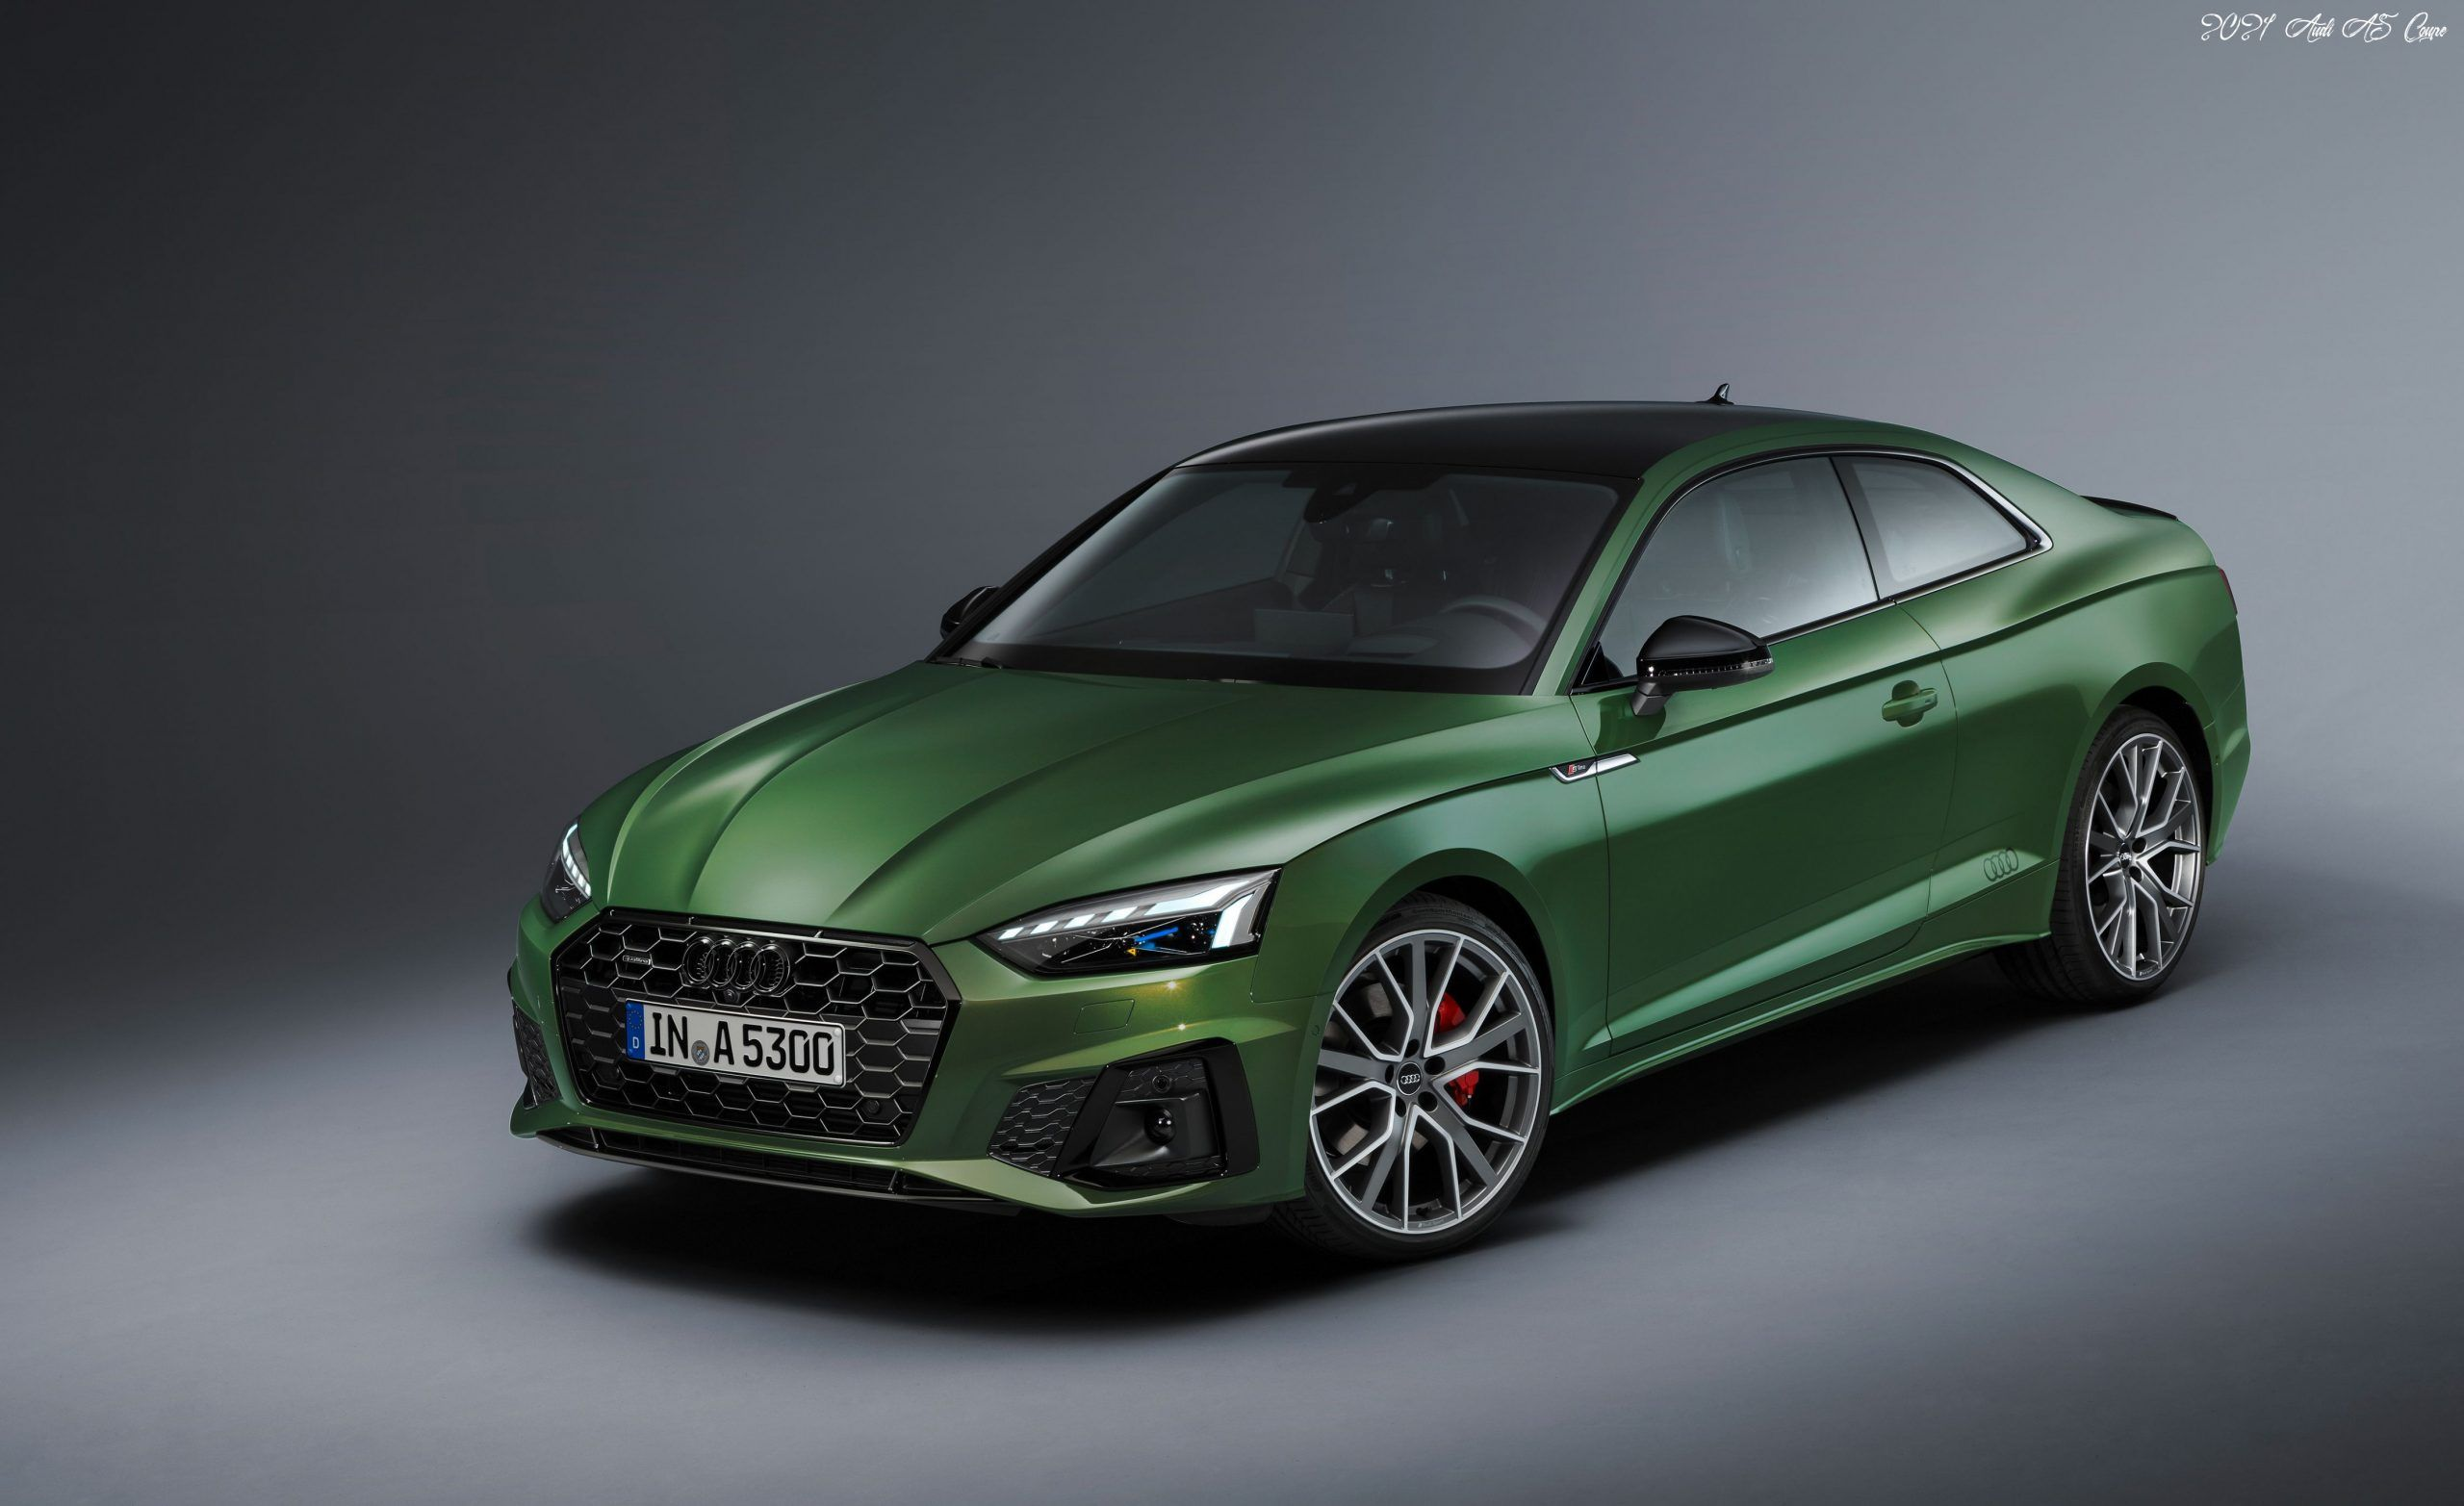 2021 audi a5 coupe release in 2020  audi a5 coupe audi